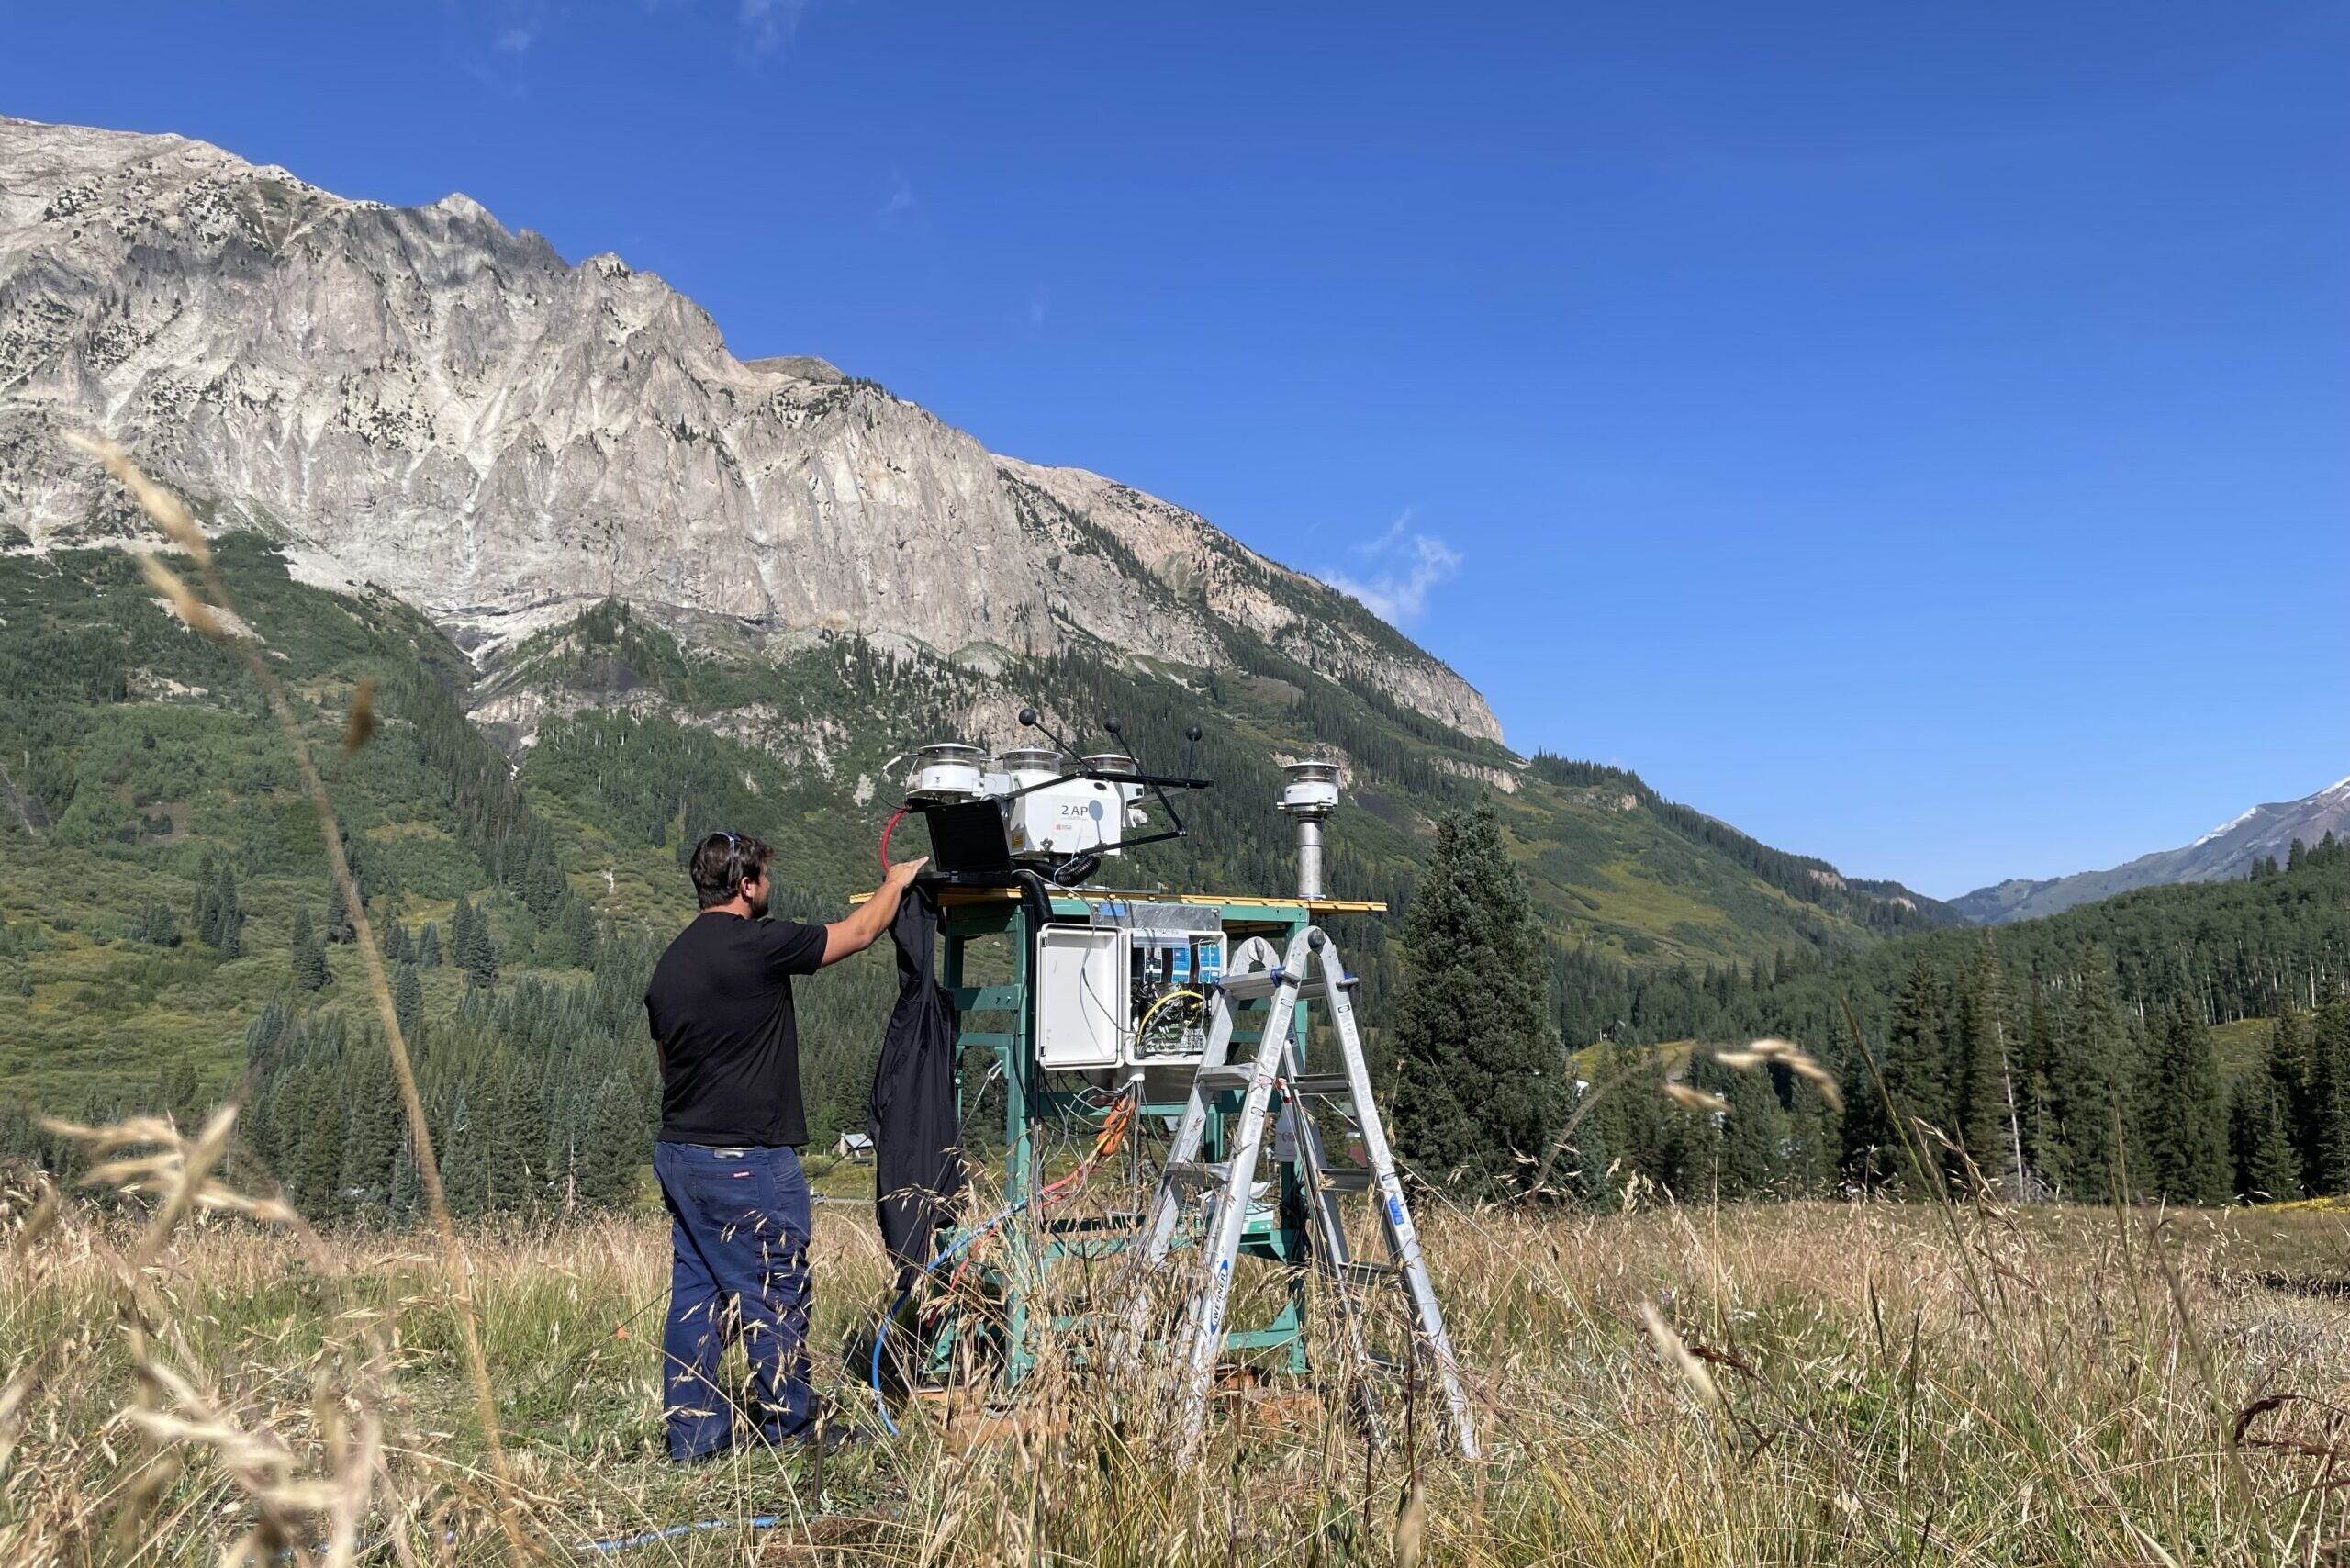 A field technician works with research equipment for the SAIL campaign in Gothic, Colo. on August 20, 2021.